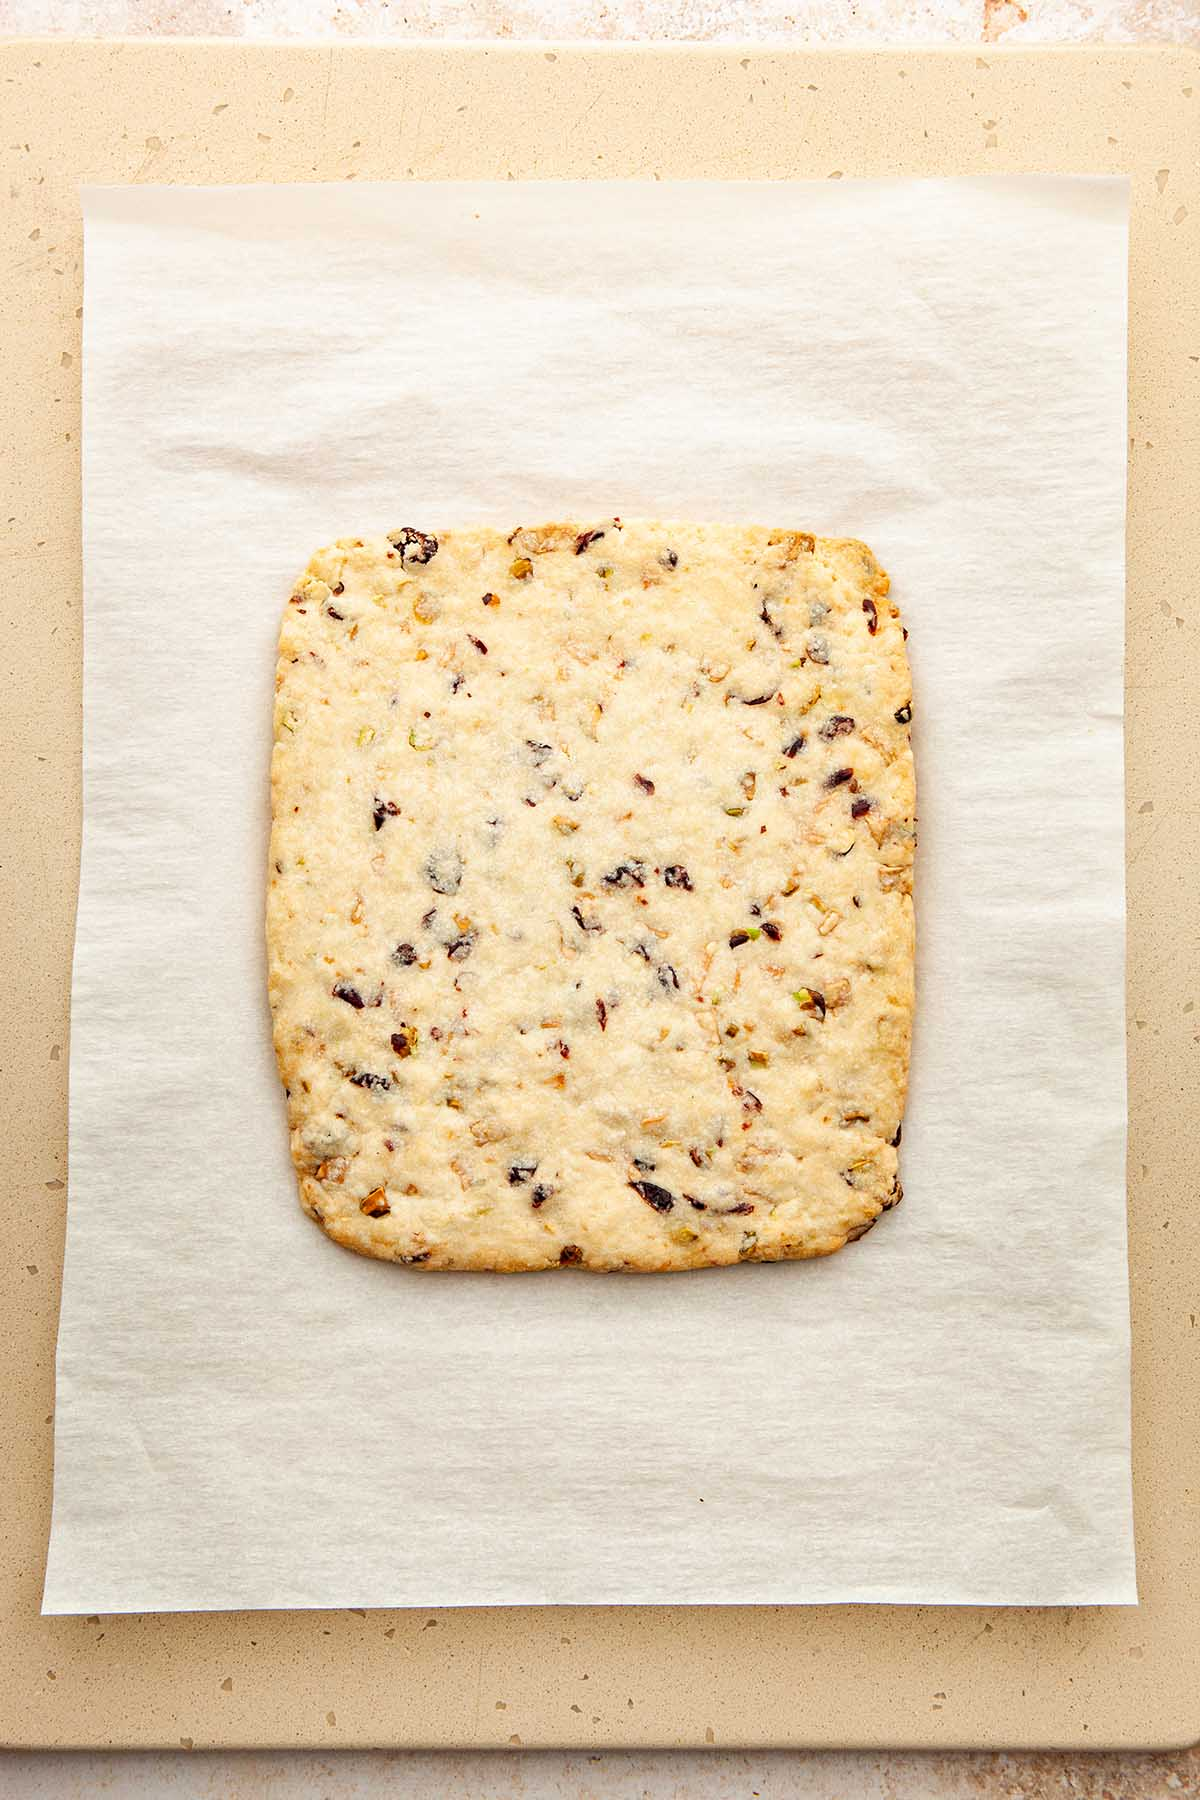 A baked cookie slab on parchment paper.